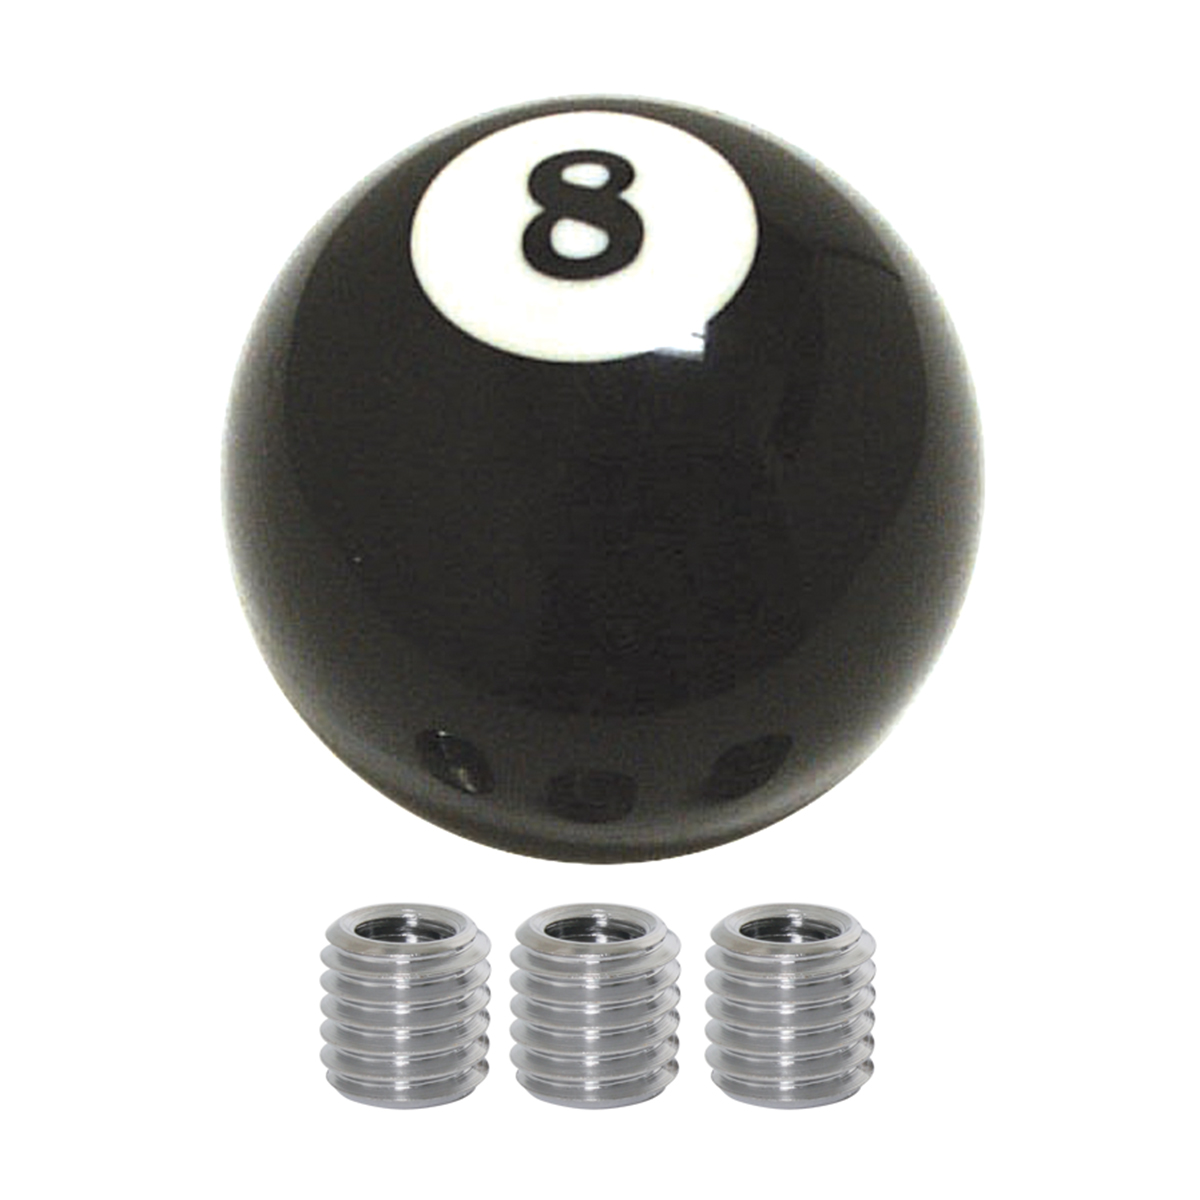 Orignal Ball Gear Shift Knob